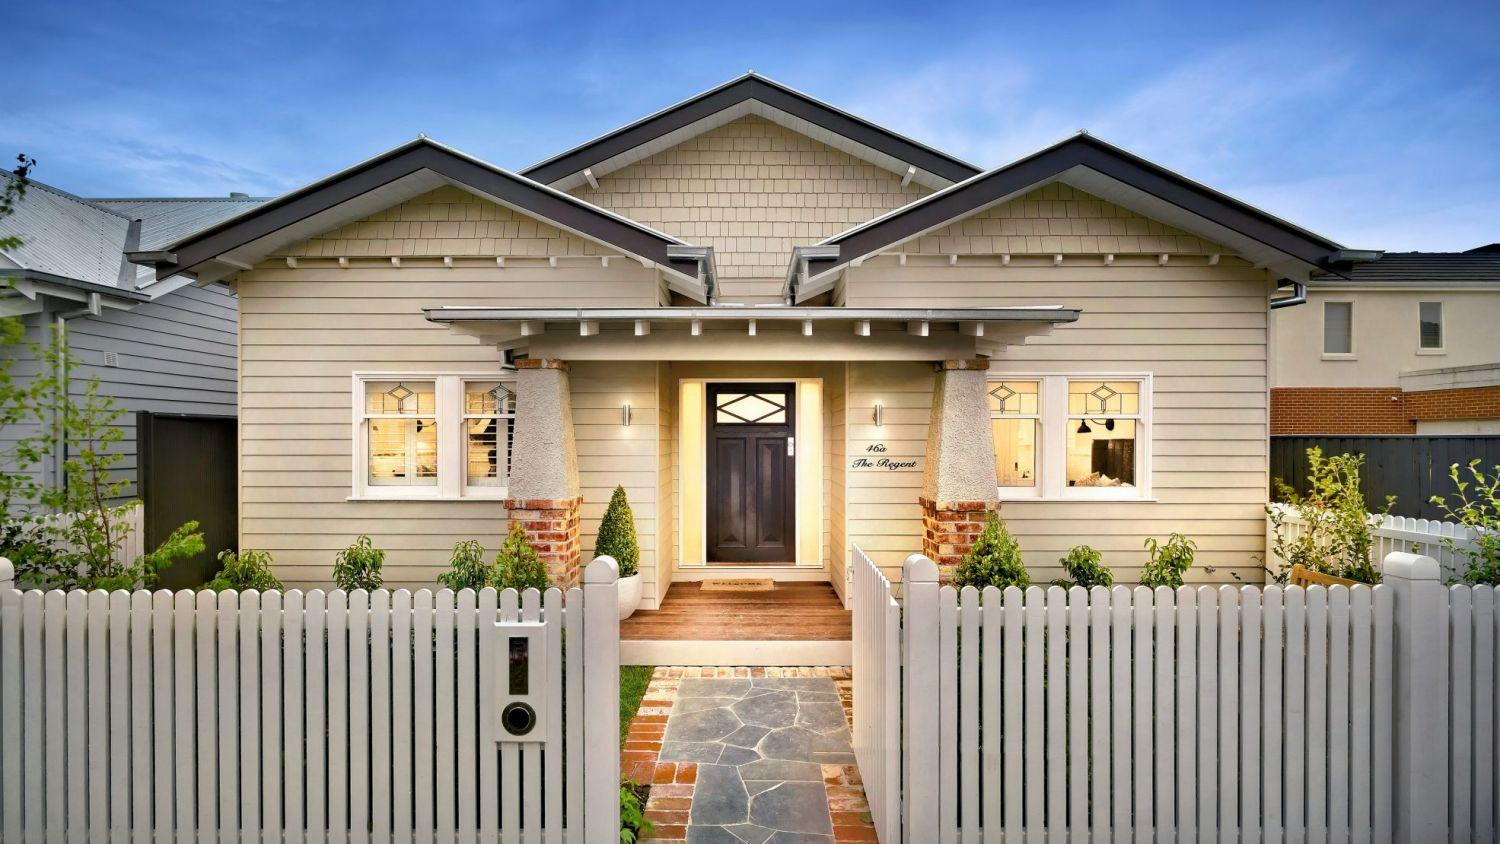 Single detached home with white picket fence